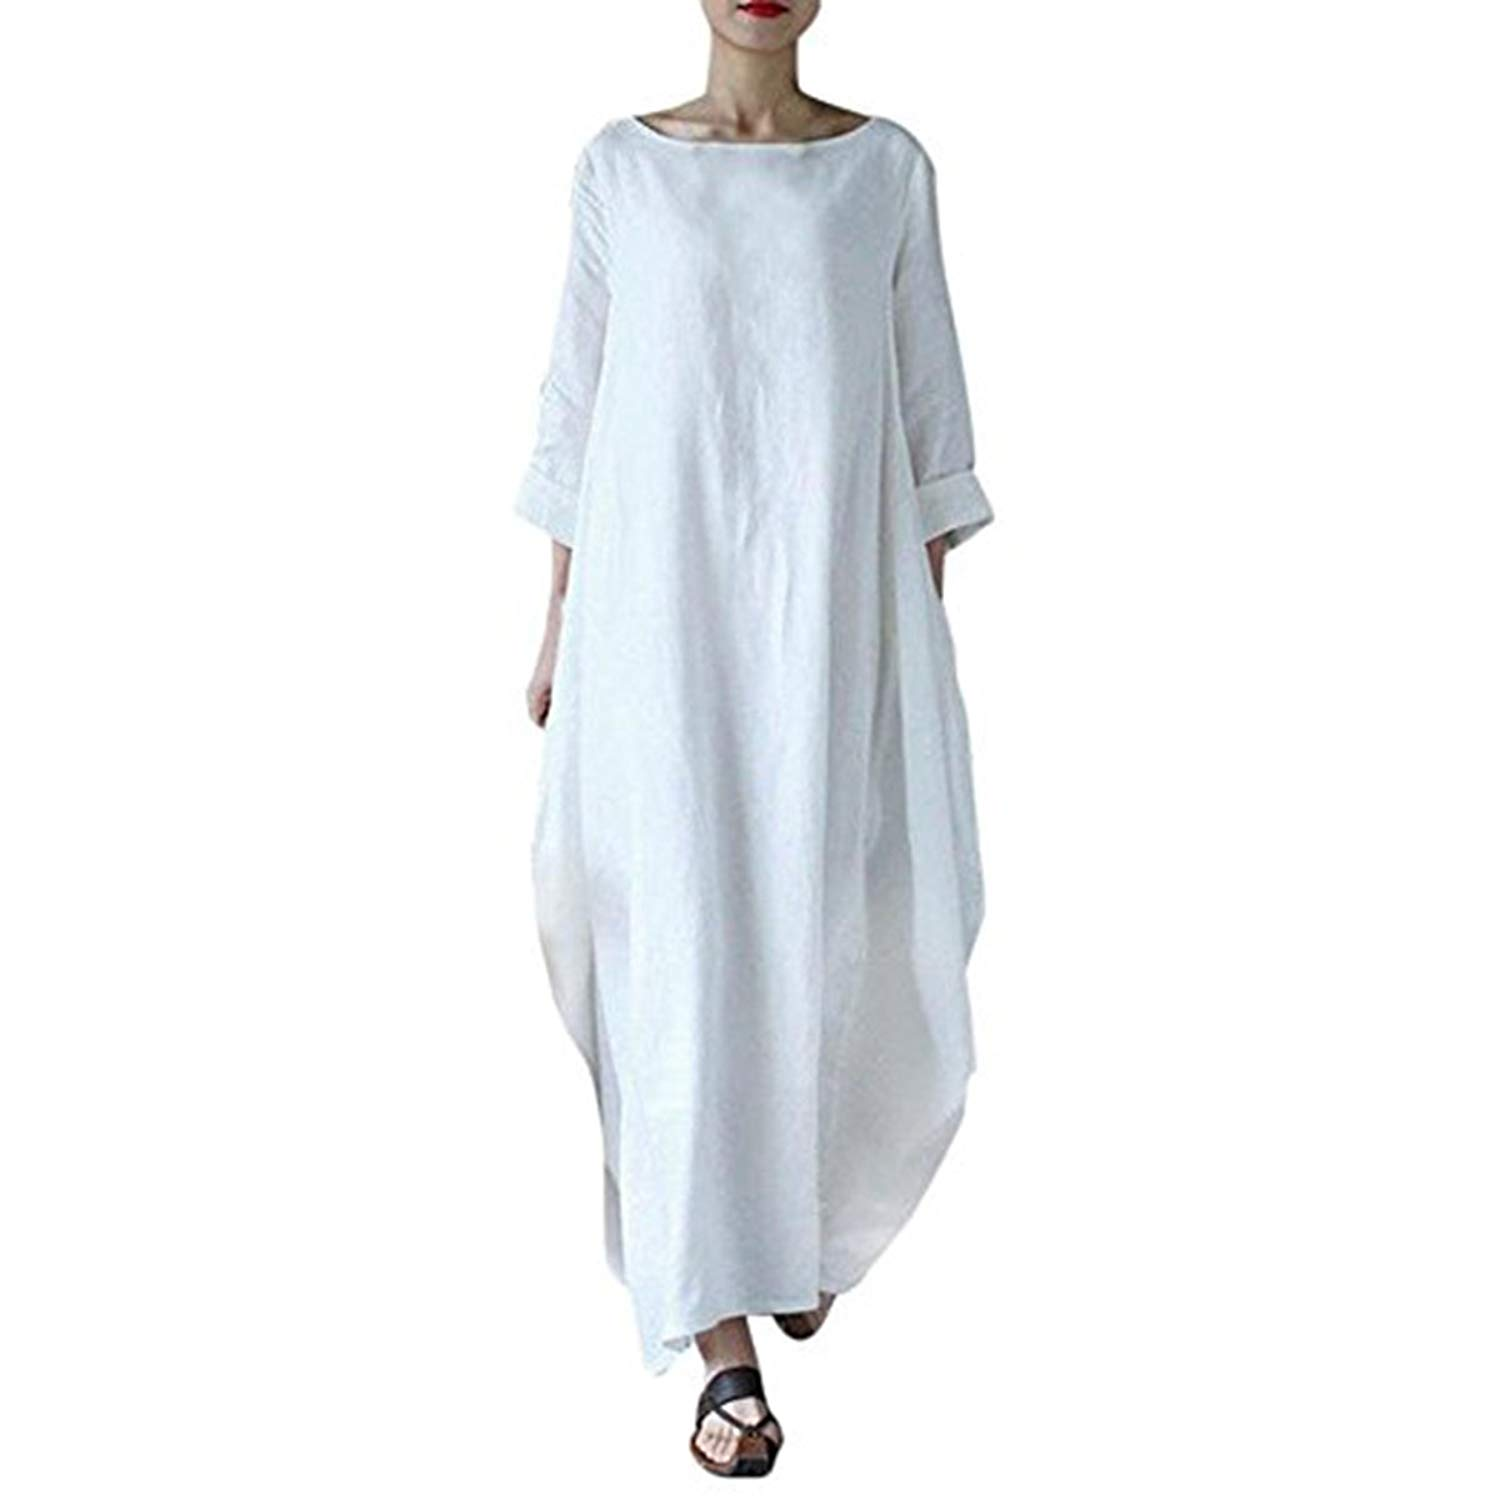 9cf9e61f697 Get Quotations · oboss Women Summer Vintage 3 4 Sleeve Cotton and Linen  Dress Plus Size Loose Kaftan